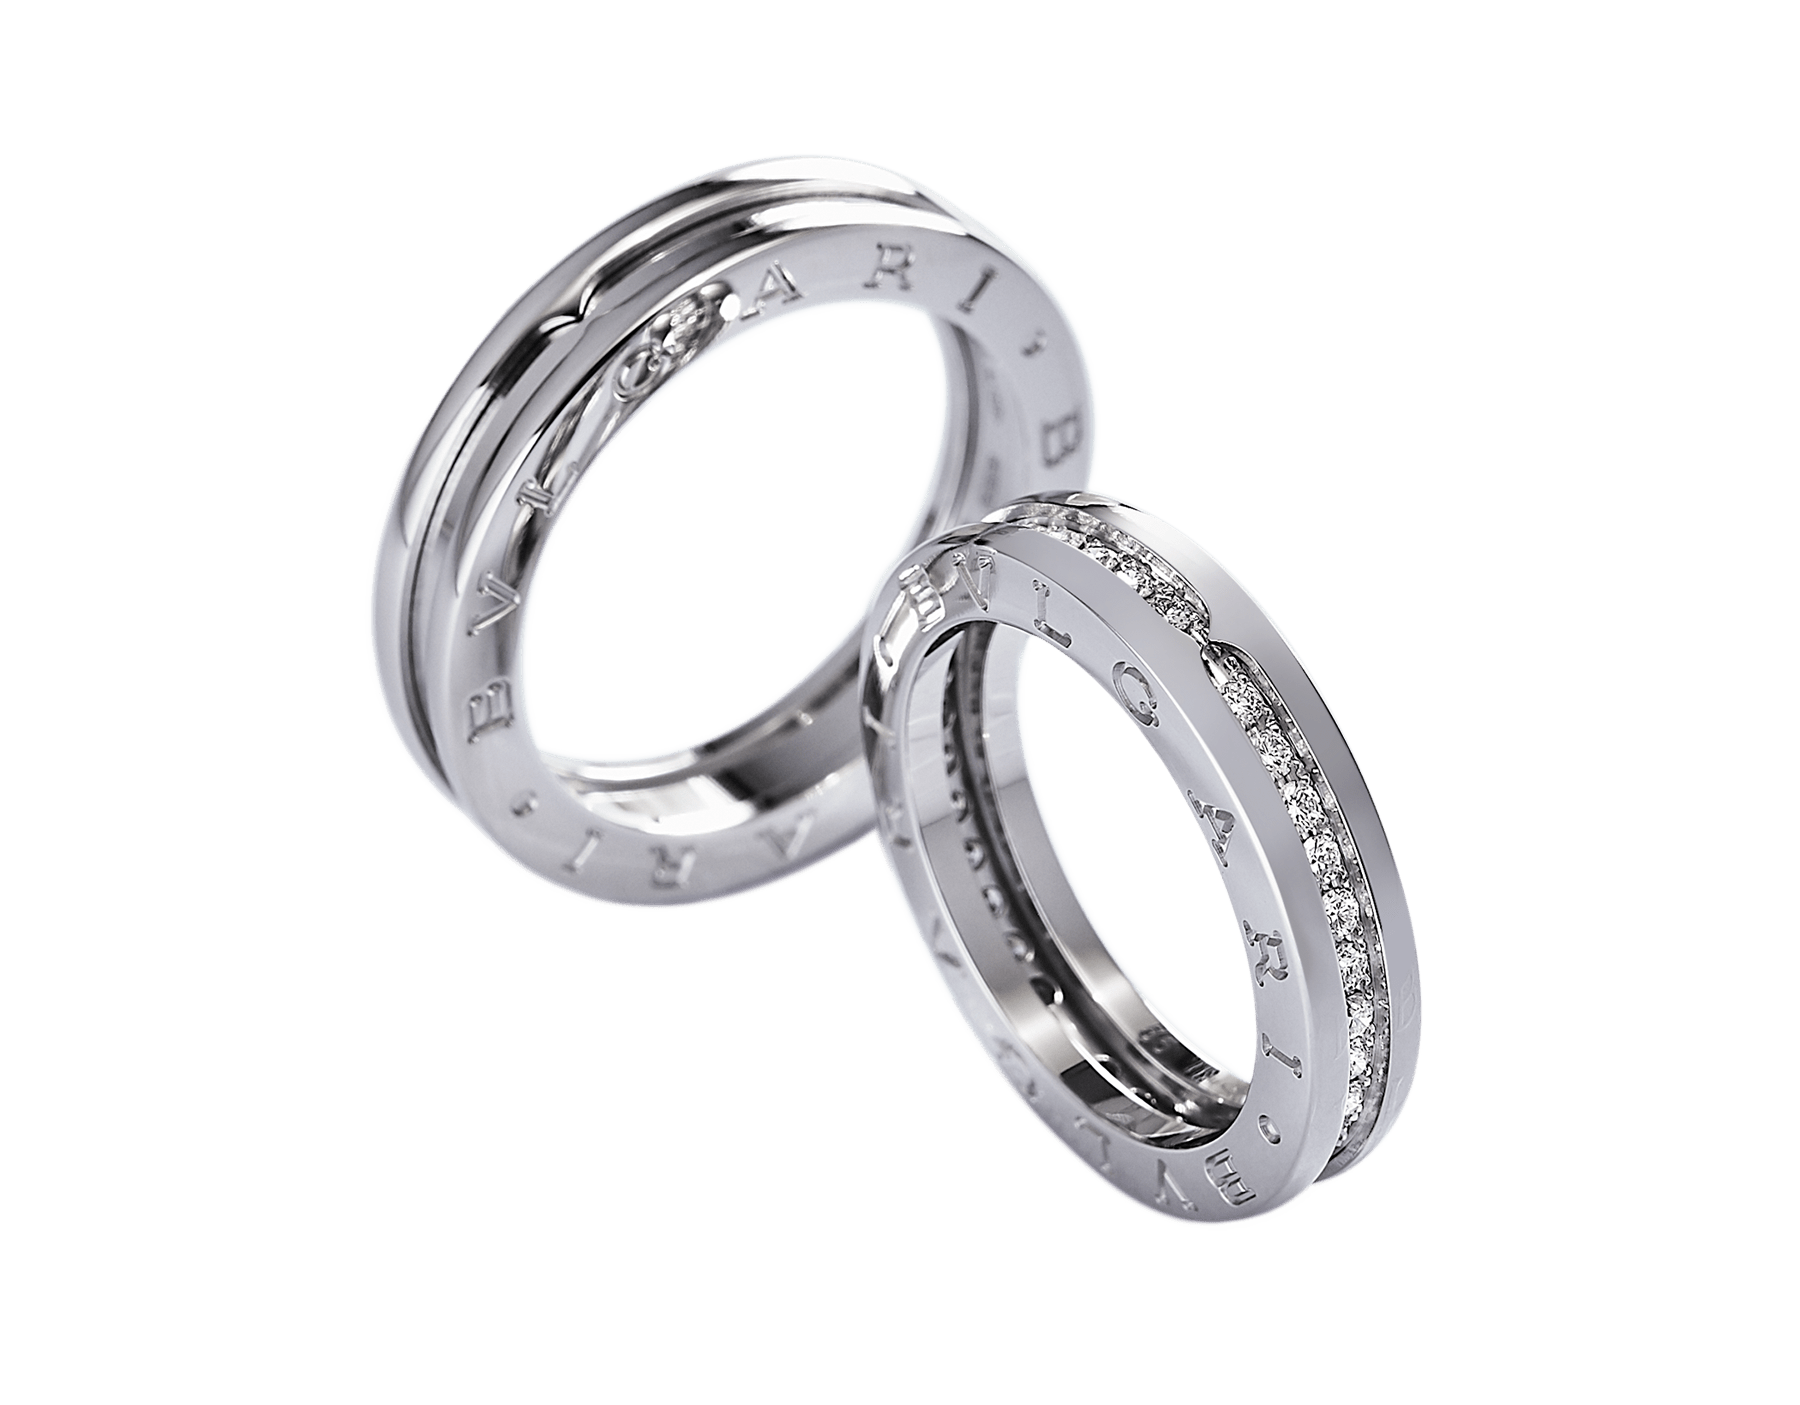 B.zero1 one-band couples' rings in 18 kt white gold, one of which set with pavé diamonds on the spiral. A timeless ring set fusing visionary design with bold charisma. Bzero1-One-Band-Couples-Rings image 1